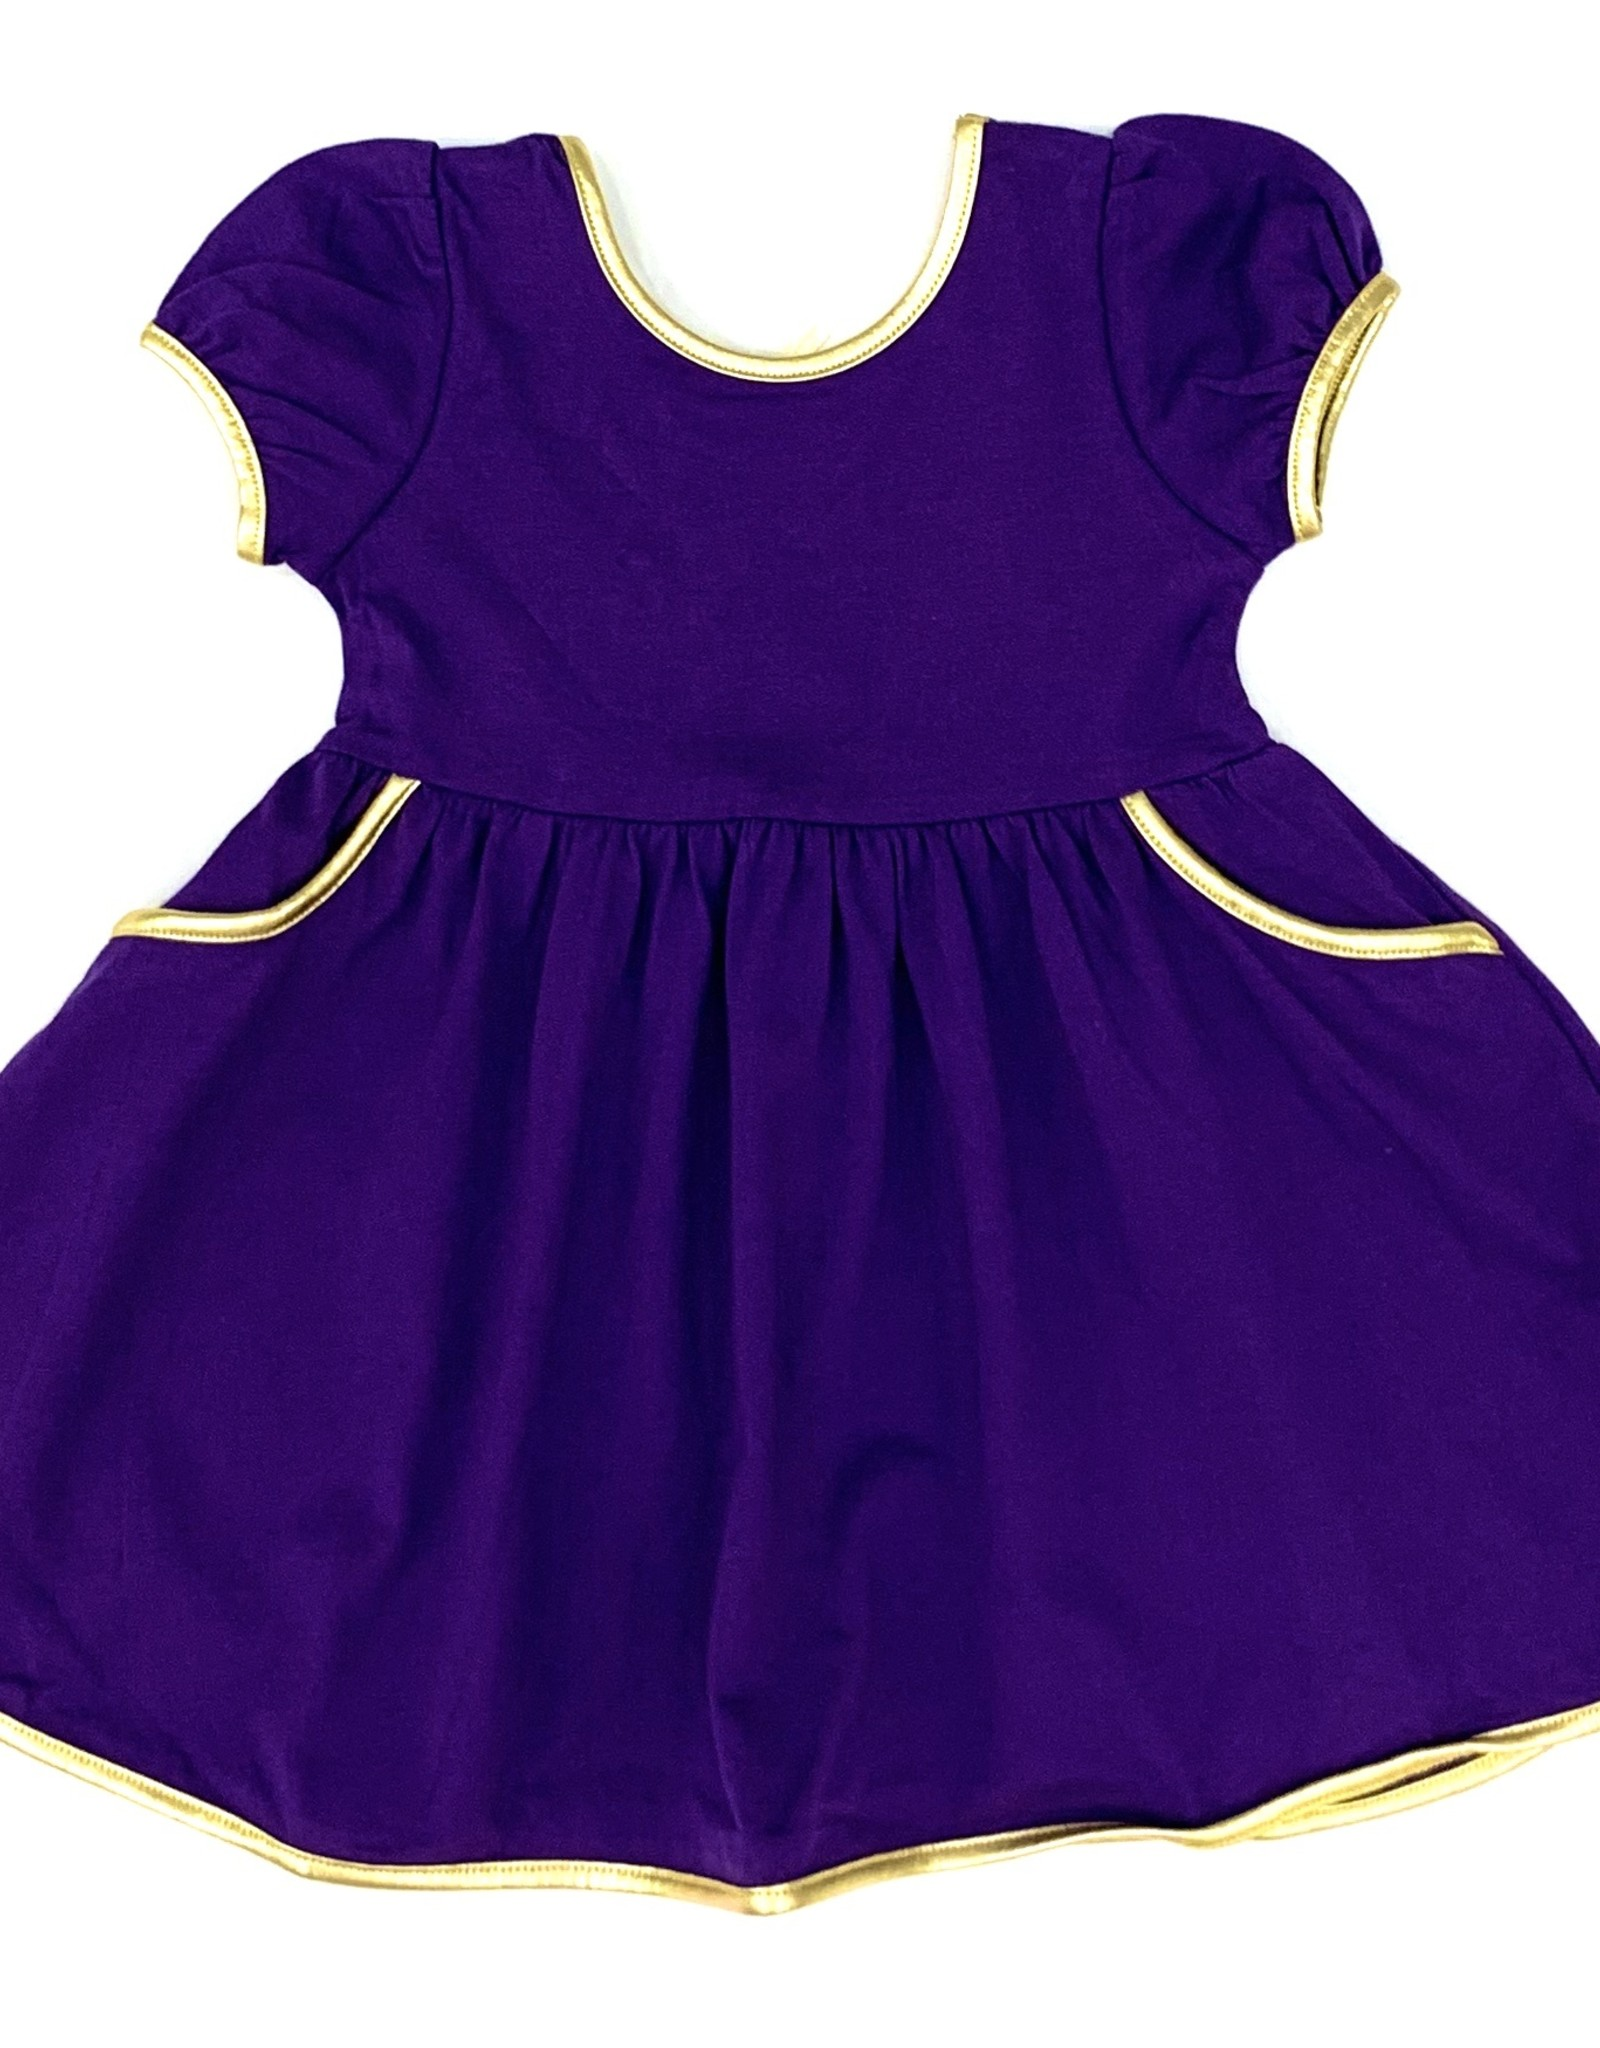 Velvet Fawn Purple And Gold Swoop Dress